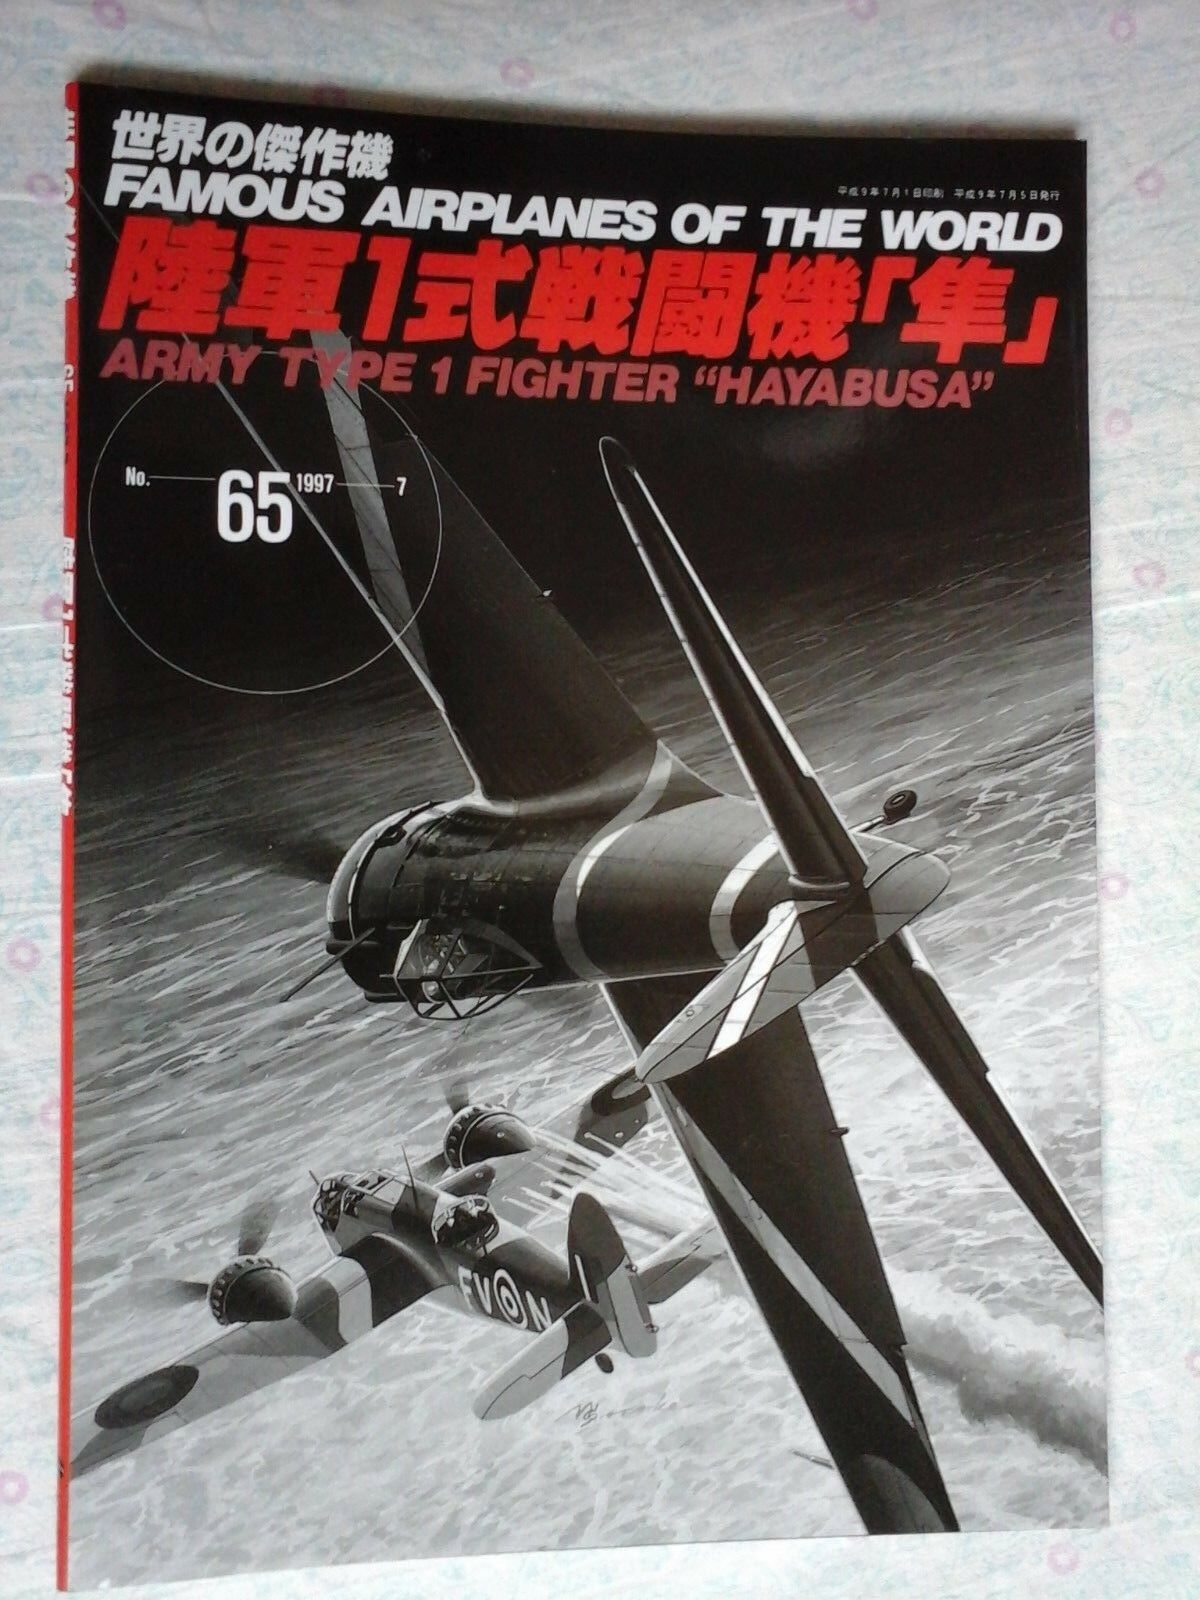 FAMOUS AIRPLANES OF THE WORLD N.65 ARMY TYPE 1 FIGHTER  HAYABUSA  OSCAR BURIN-D